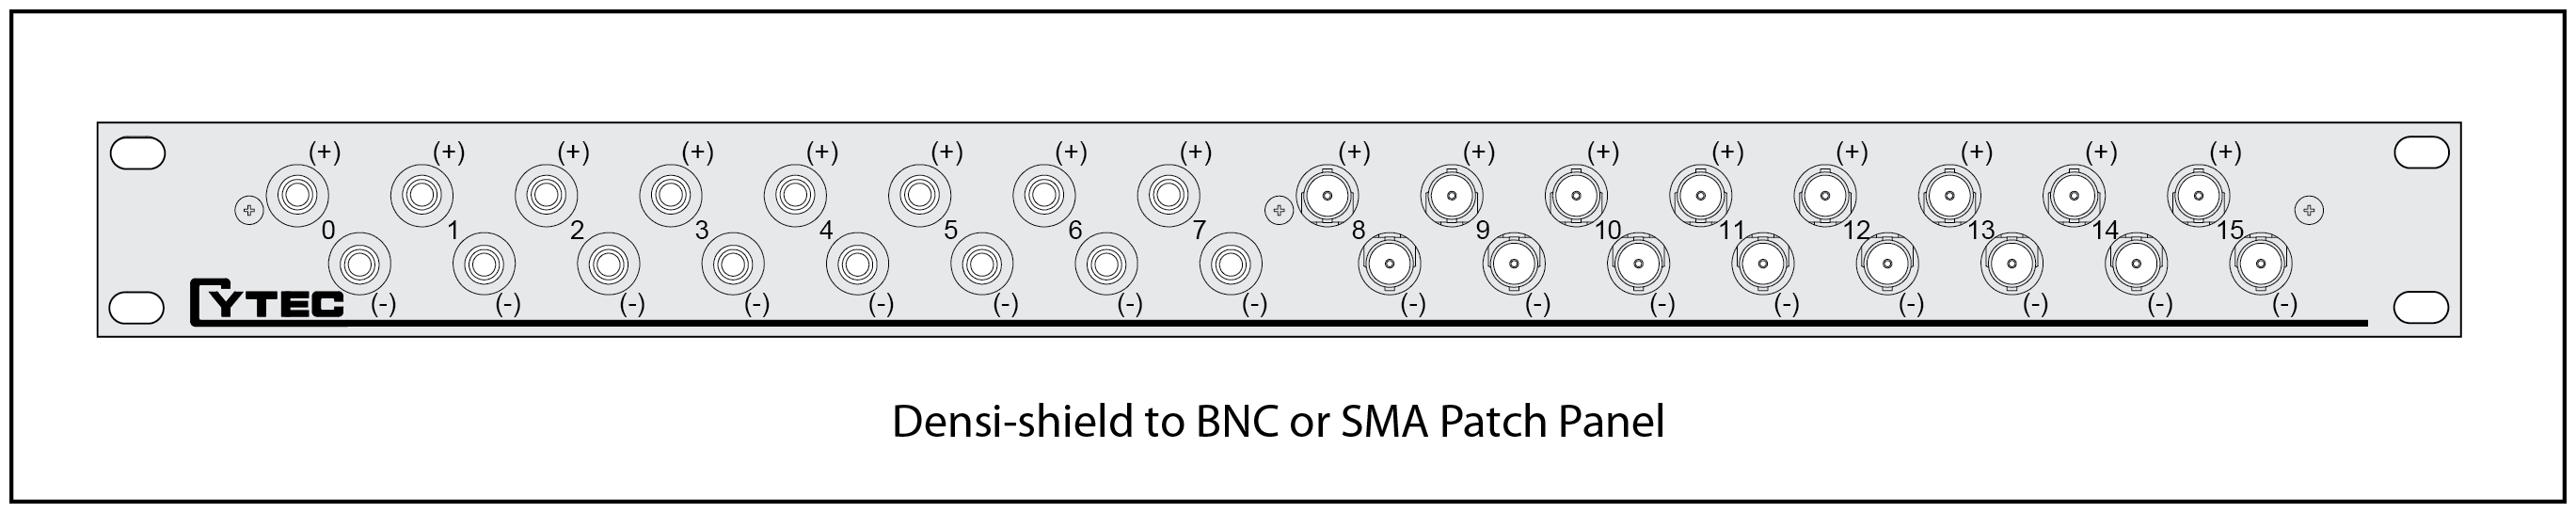 BNC or SMA Patch Panel